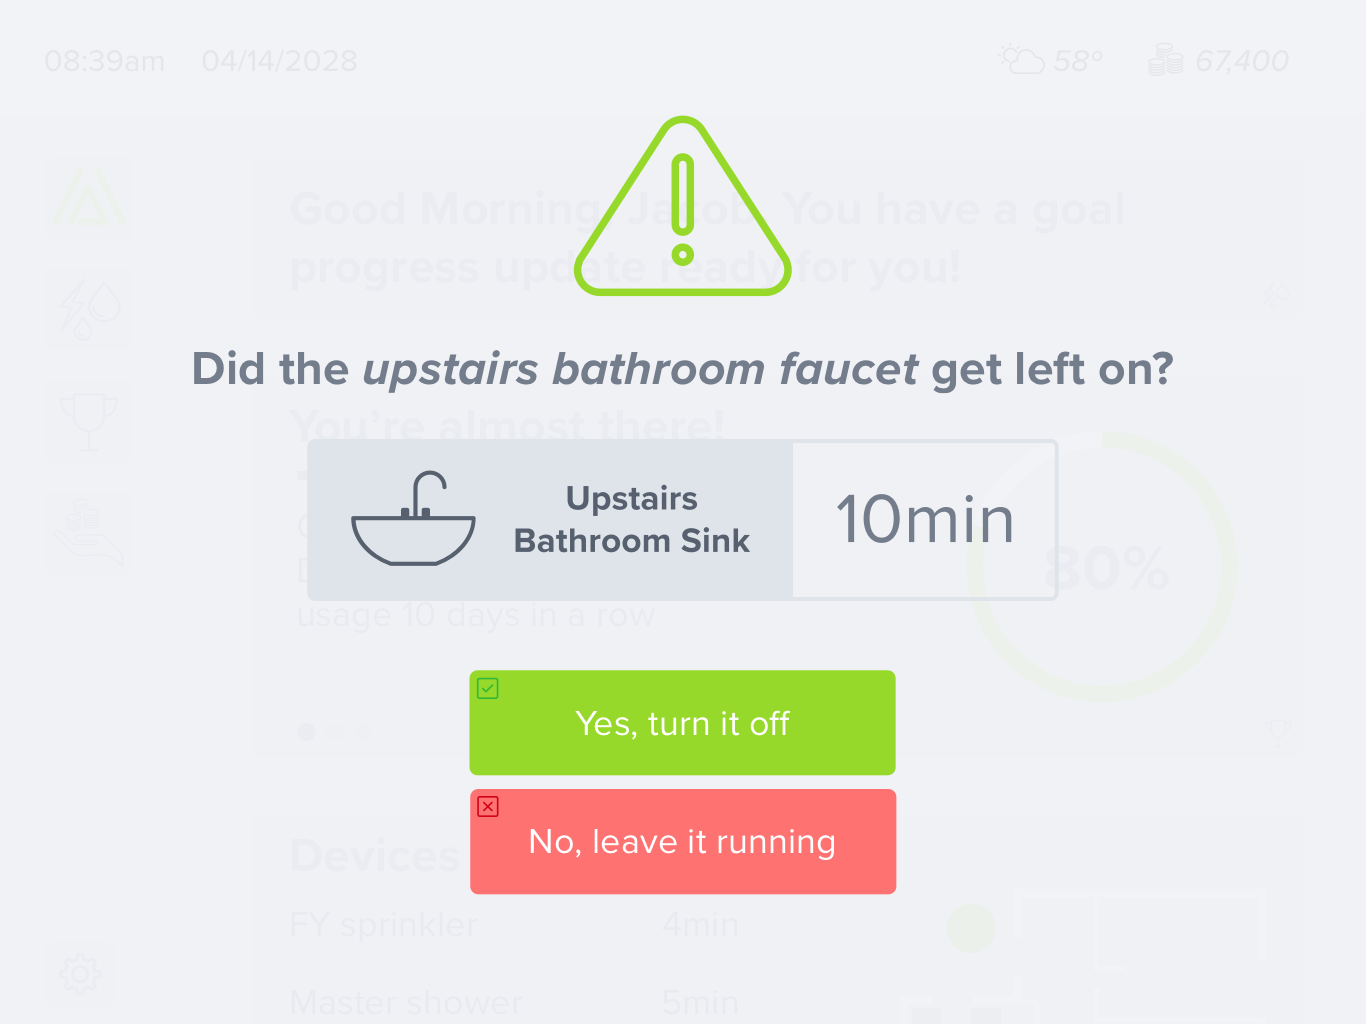 Notification —  The notifications in the previous version came up when the user navigated to the usage screen, the notifications now come up as soon as the user interacts with the interface to reduce the amount of taps before the alert can be addressed.